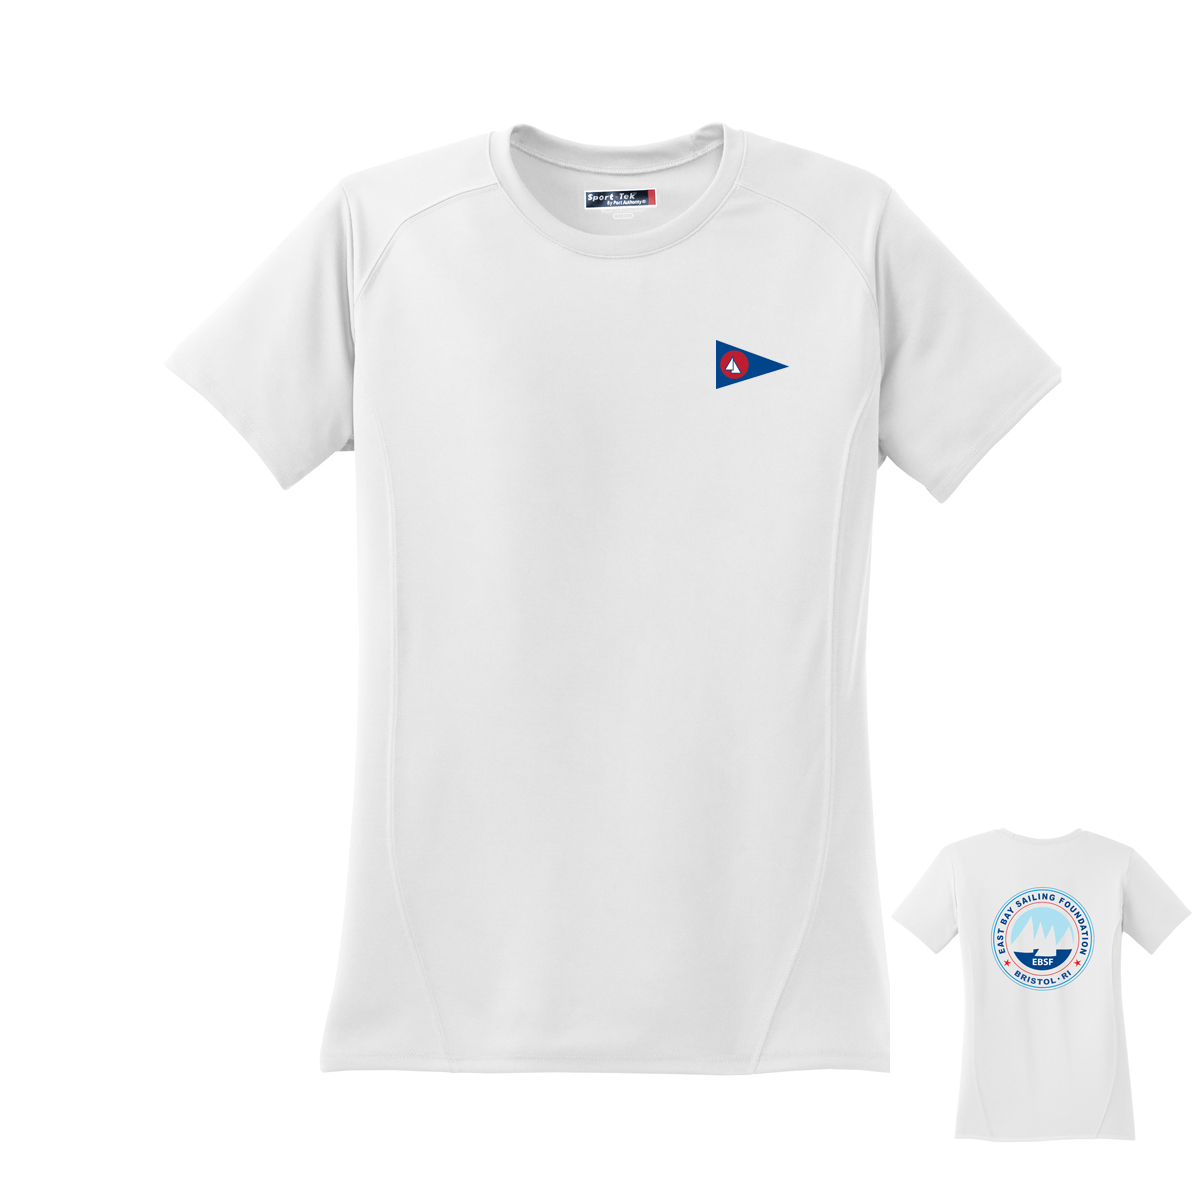 East Bay Sailing Foundation - Women's Short Sleeve Tech Tee